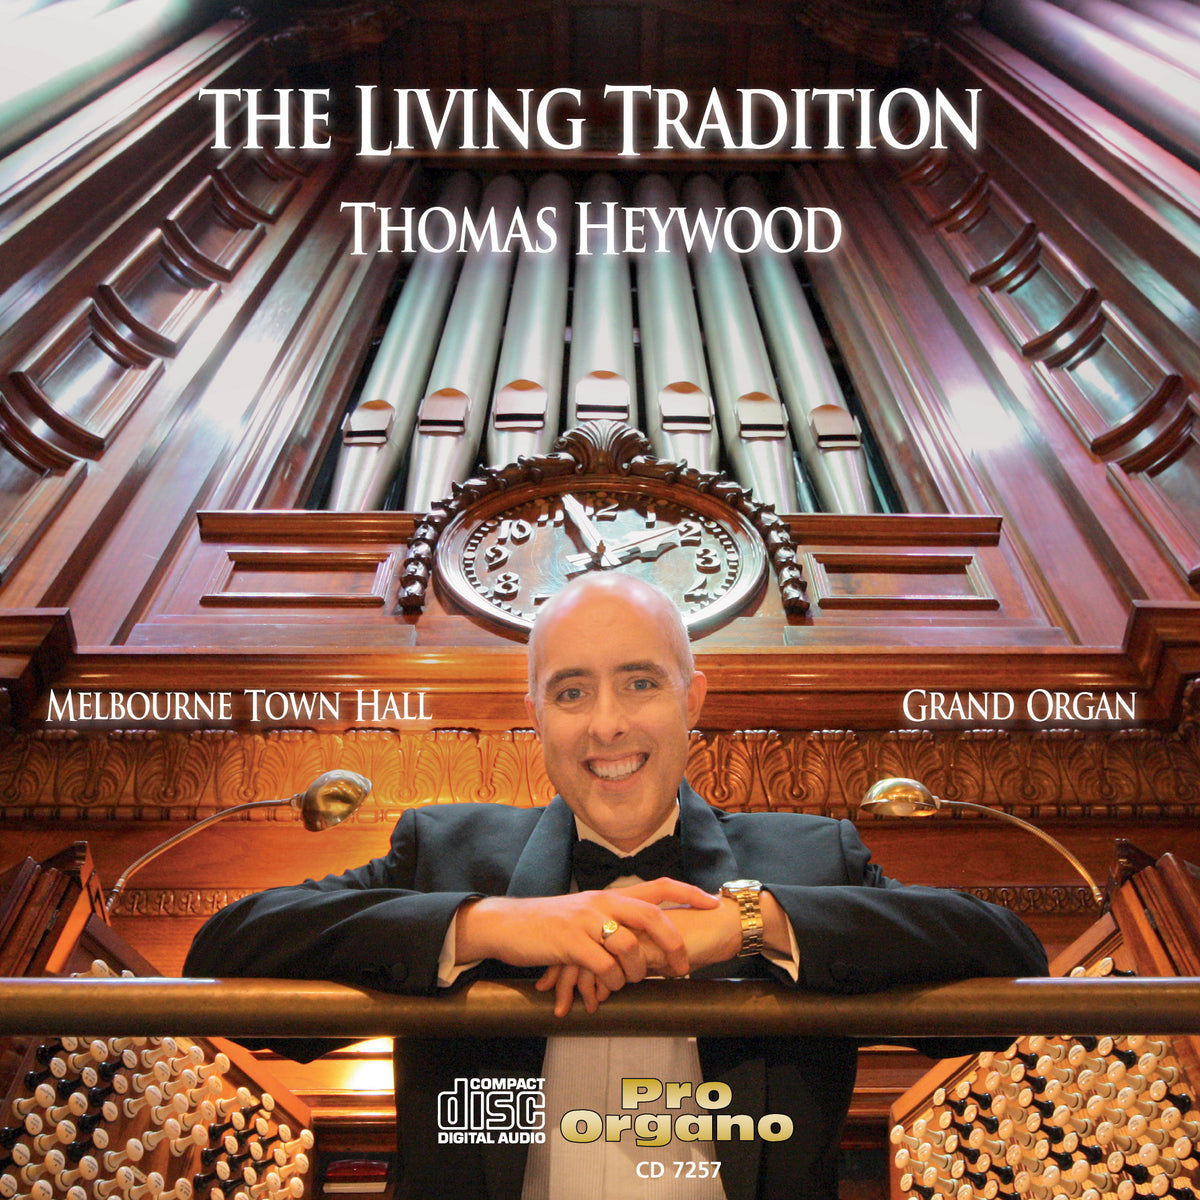 The Living Tradition (CD) | Thomas Heywood | Concert Organ International